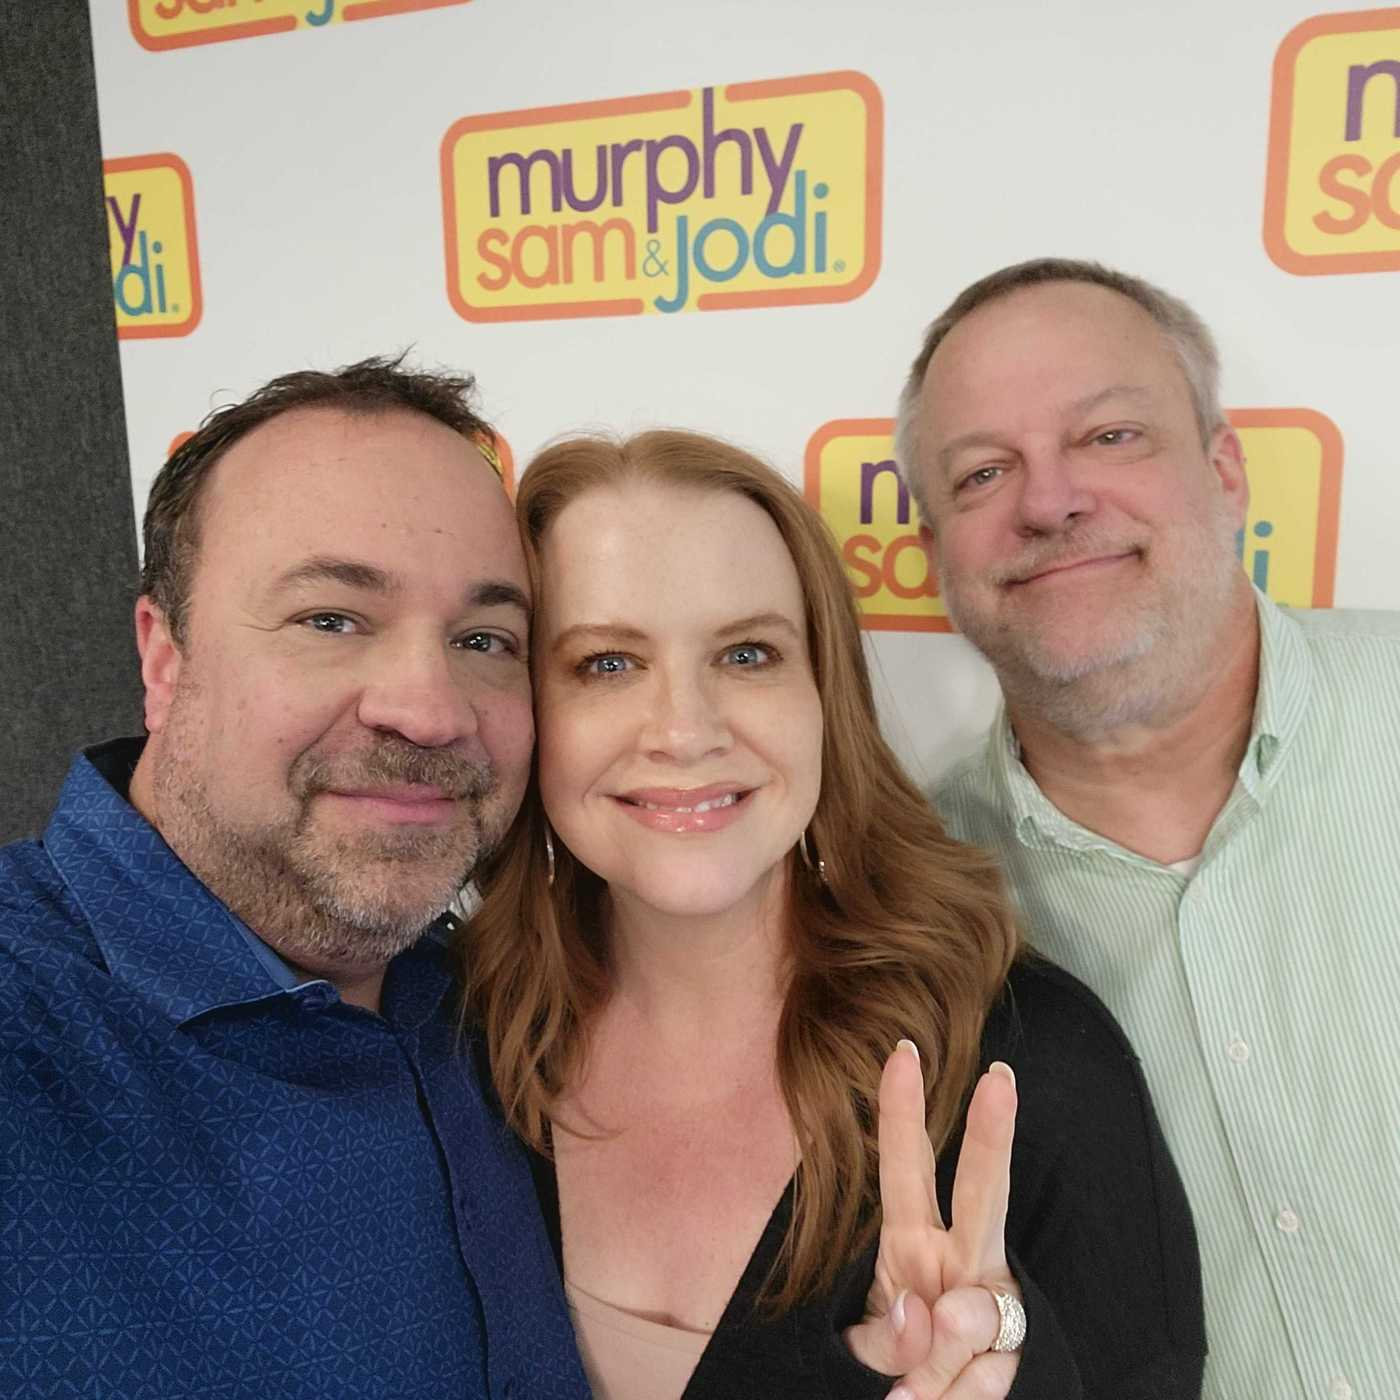 After The Show PODCAST: Did they need a degree to be Murphy, Sam & Jodi?